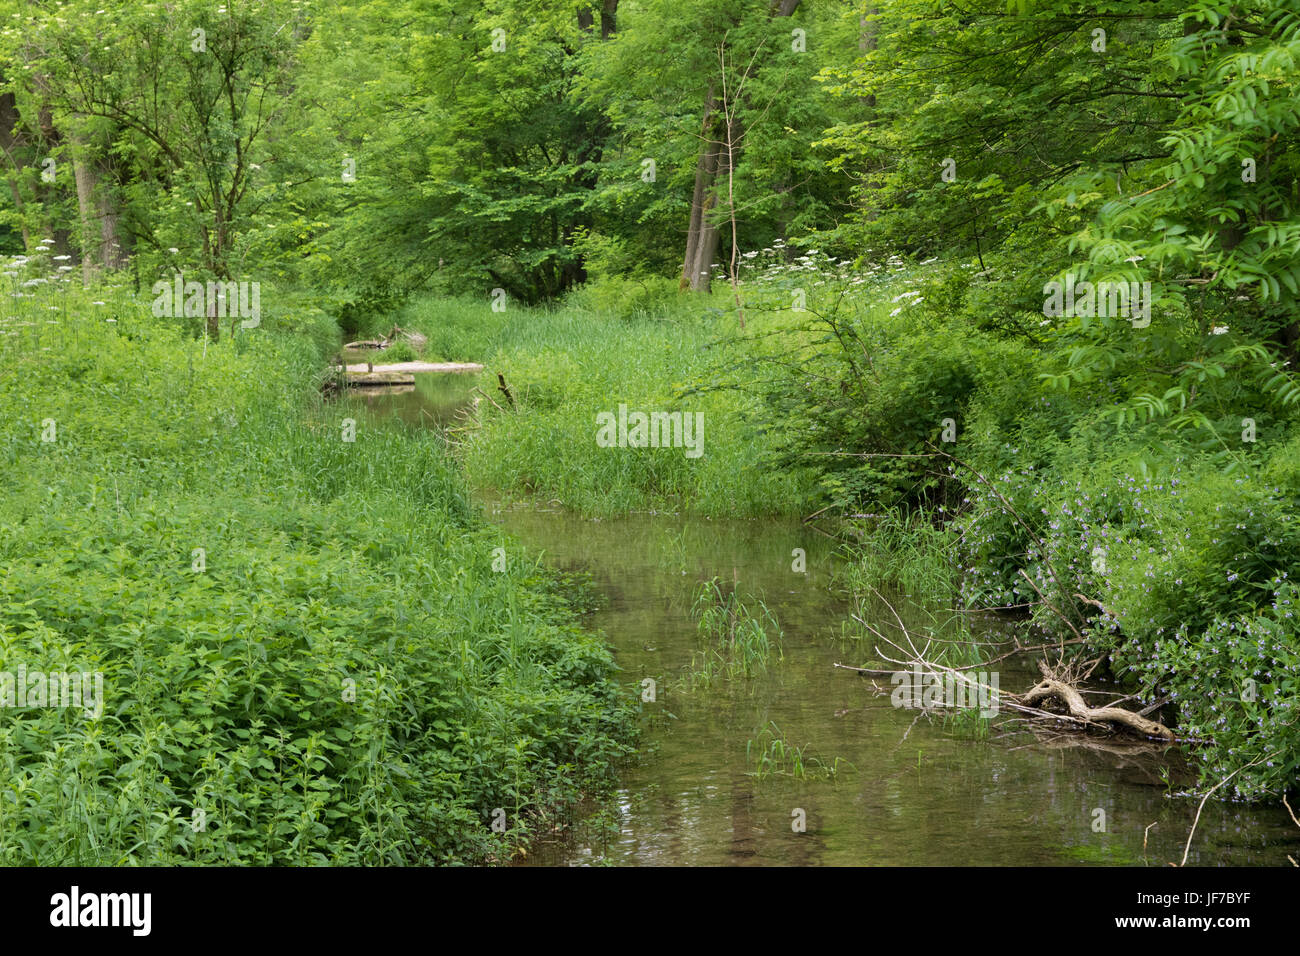 lush early summer vegetation bordering the River Lathkill in the Peak District National Park, UK - Stock Image